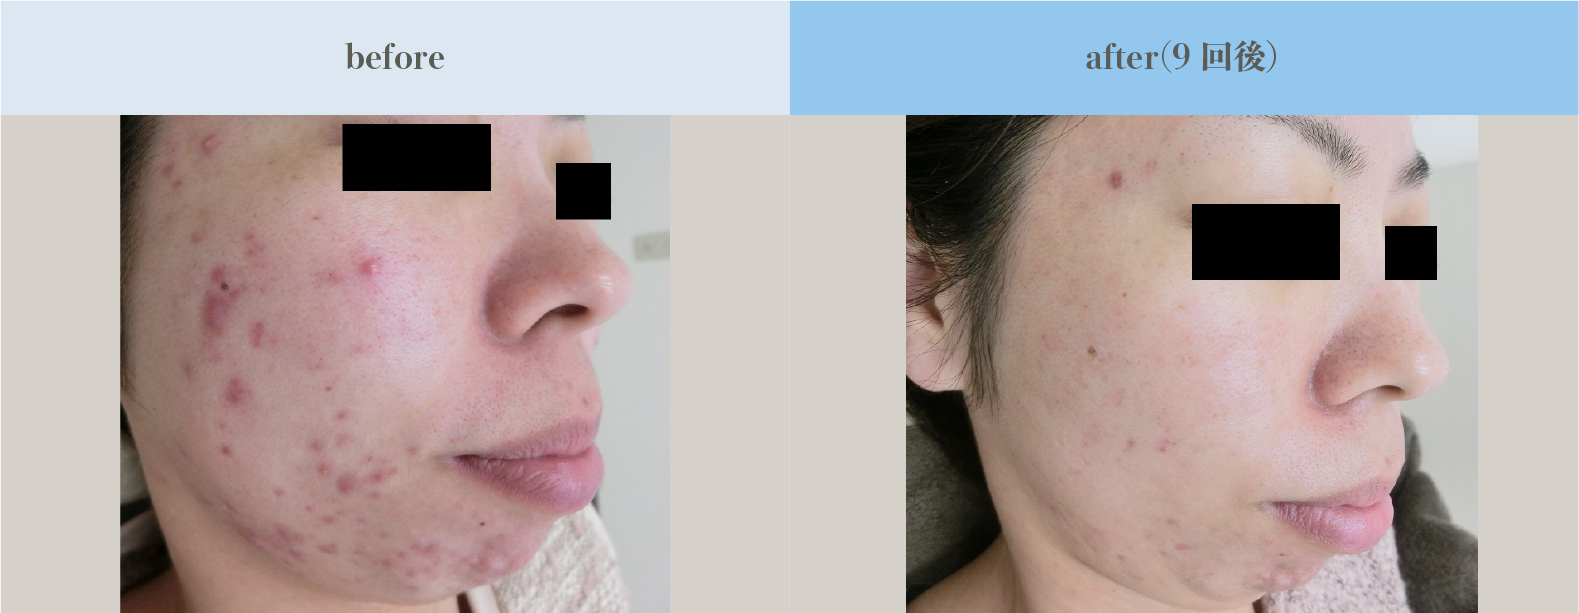 Micro fractional laser